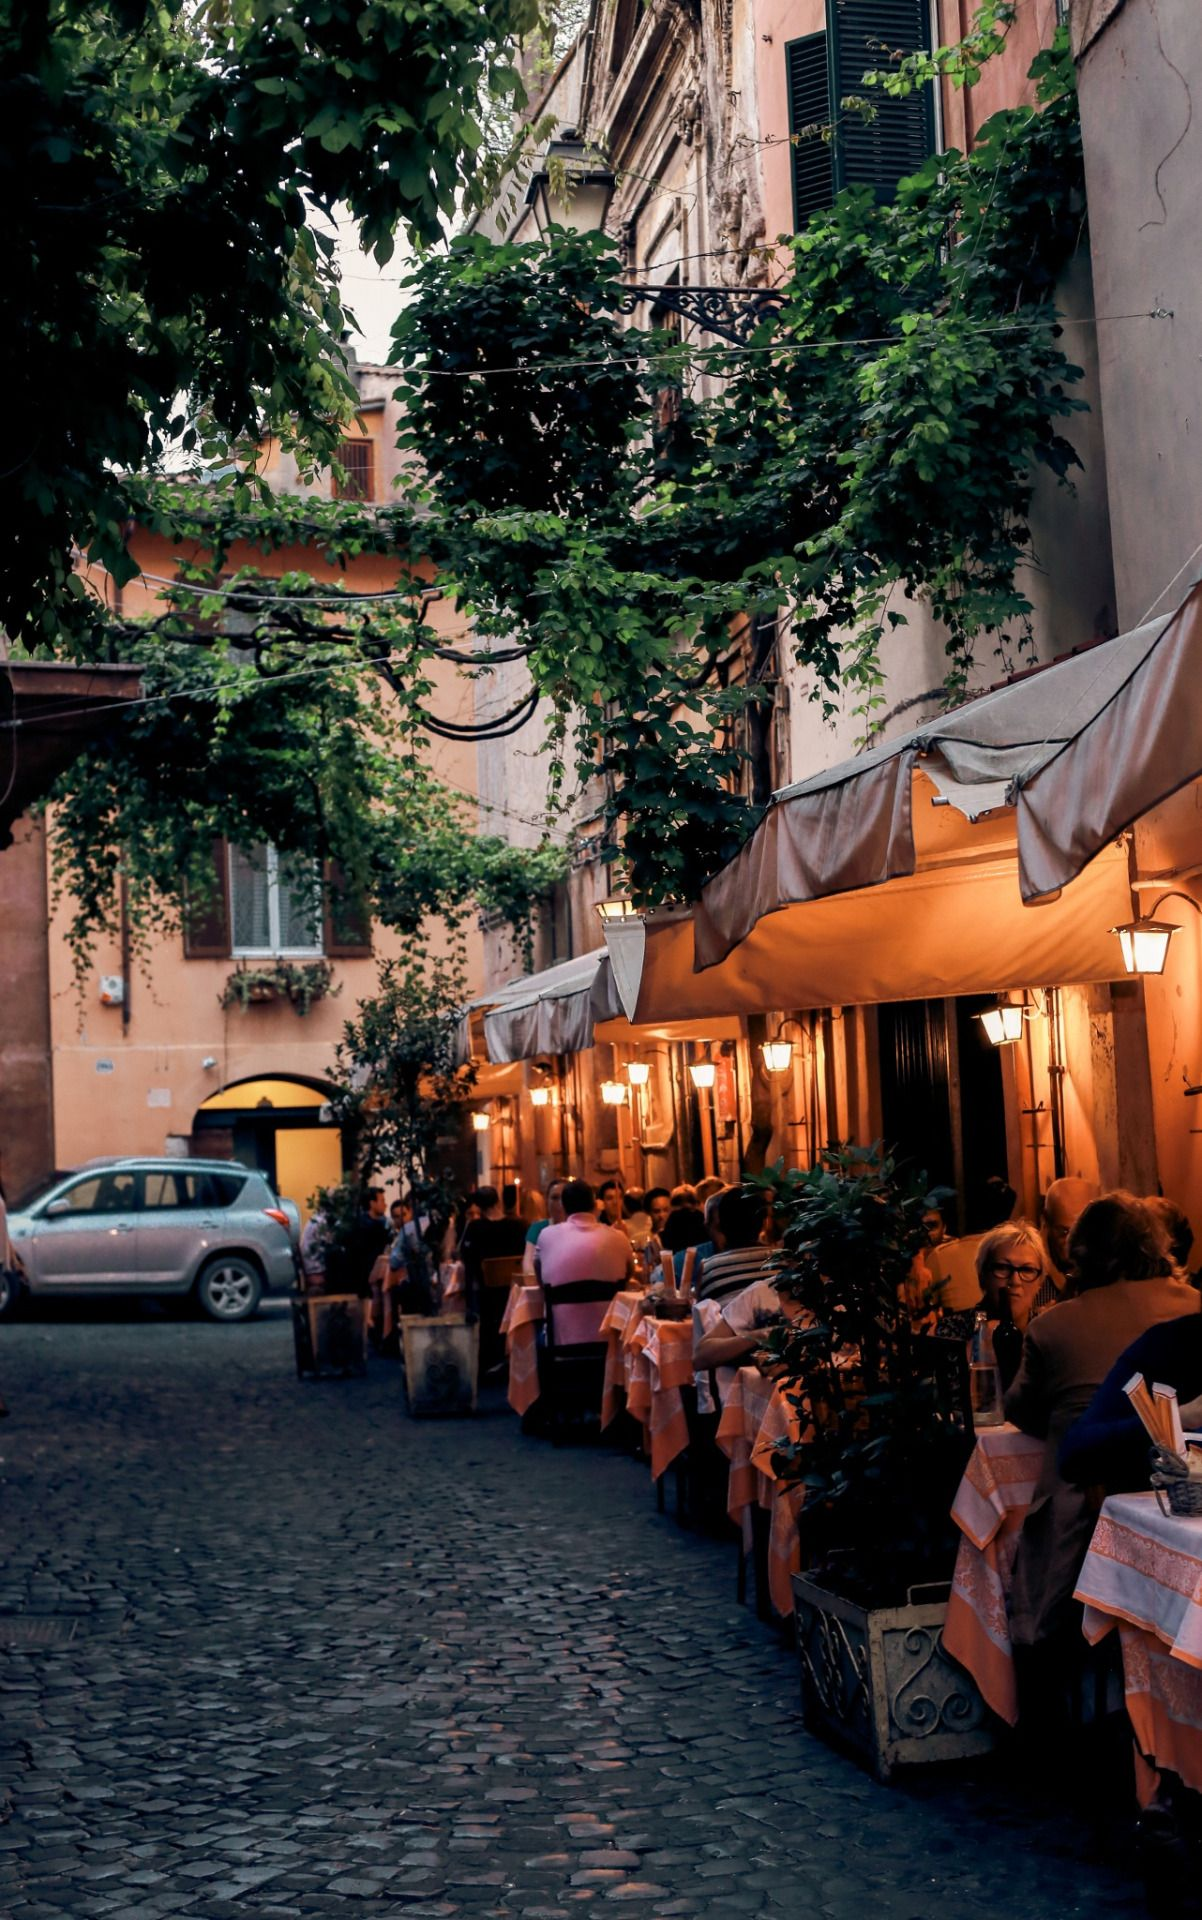 Trastevere (Rome, Italy) by  Laurais Arts                                                                                                                                                                                 Mehr